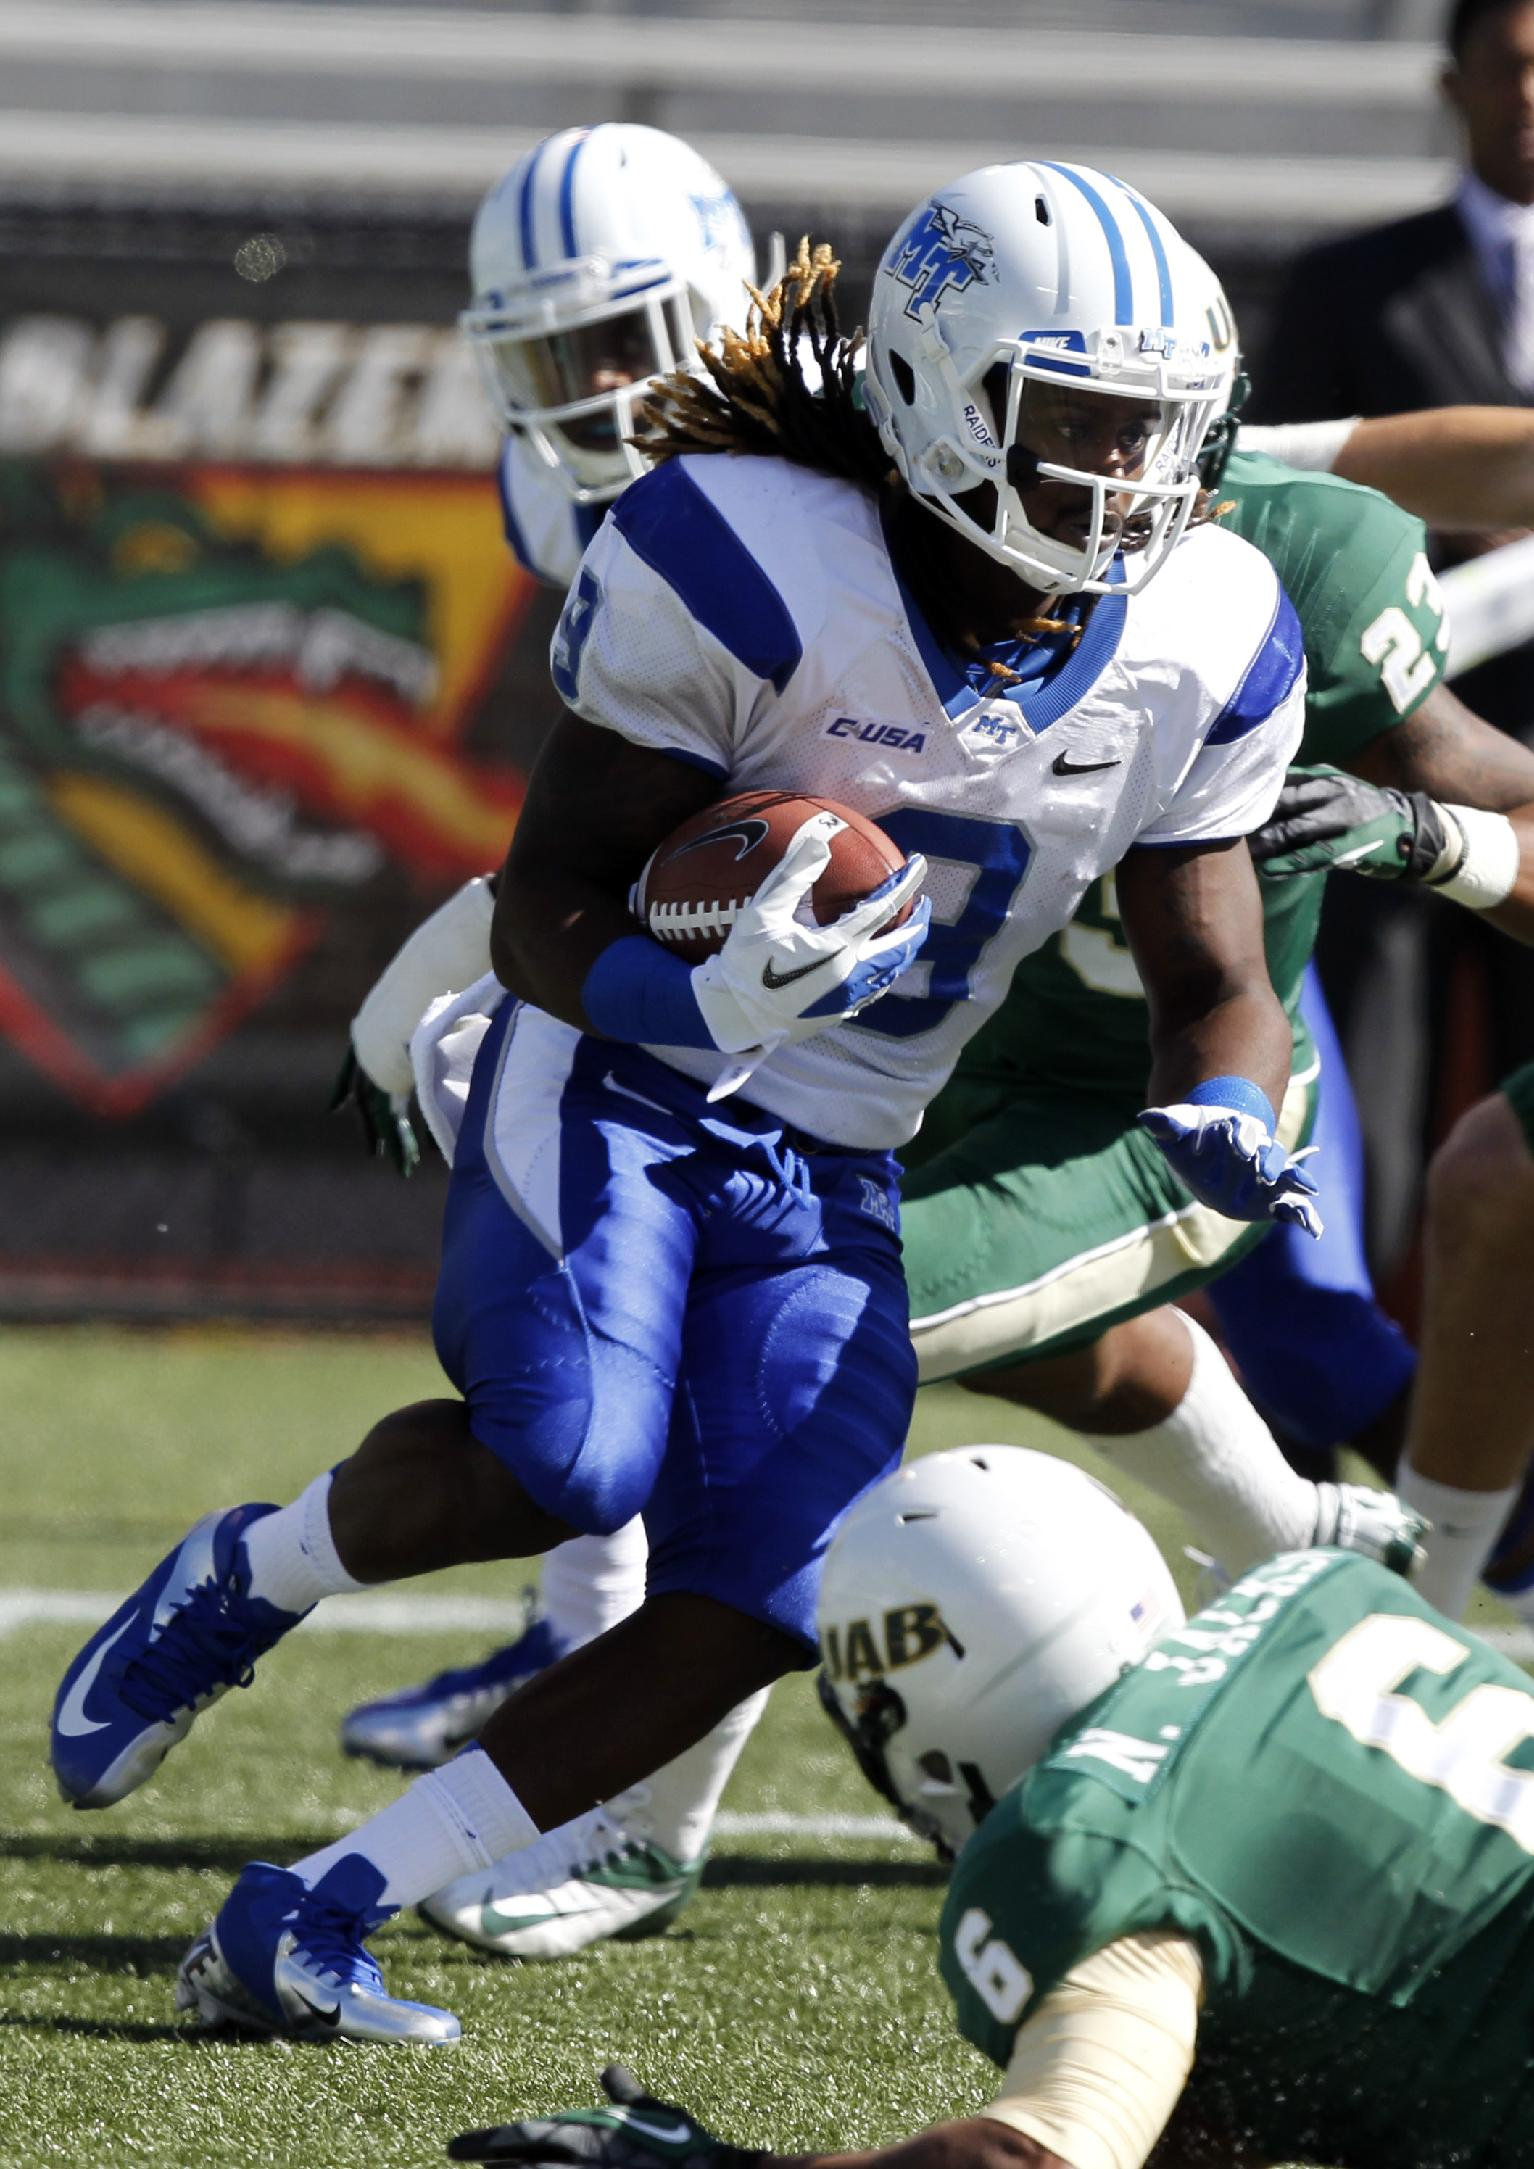 Middle Tennessee State wide receiver Tavarres Jefferson carries the ball during a kick return in the first half of an NCAA college football game against UAB on Saturday, Nov. 1, 2013, in Birmingham, Ala